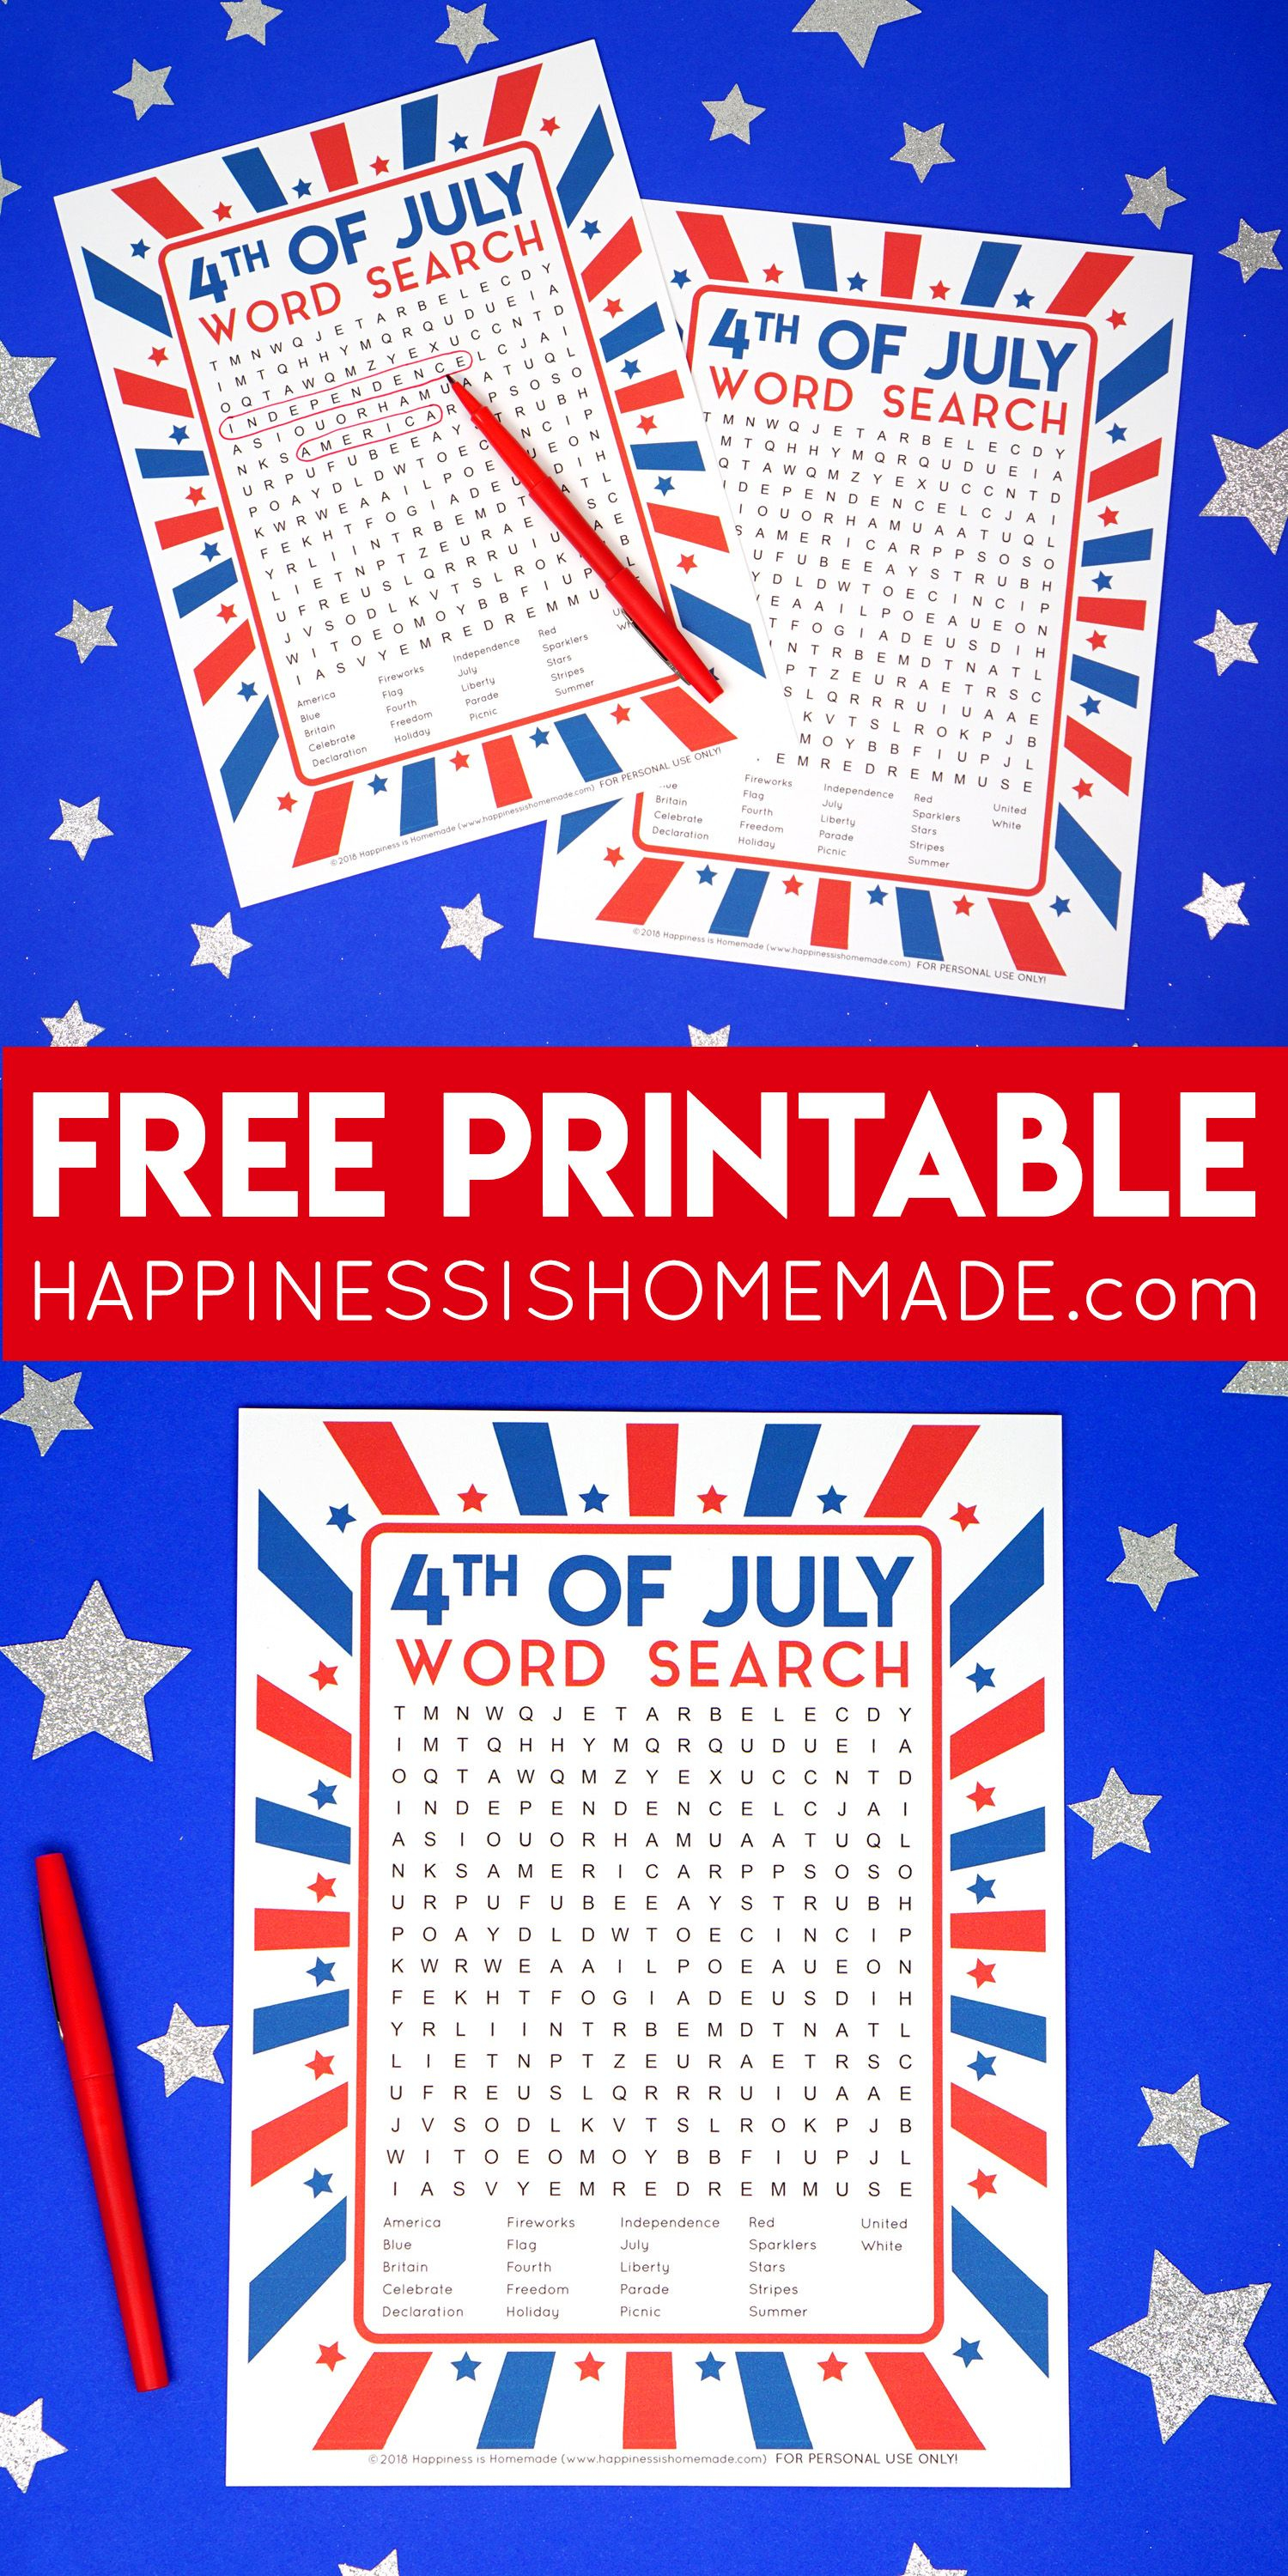 This Fun Printable 4Th Of July Word Search Puzzle Is A Ton Of Fun - Printable July 4Th Puzzles